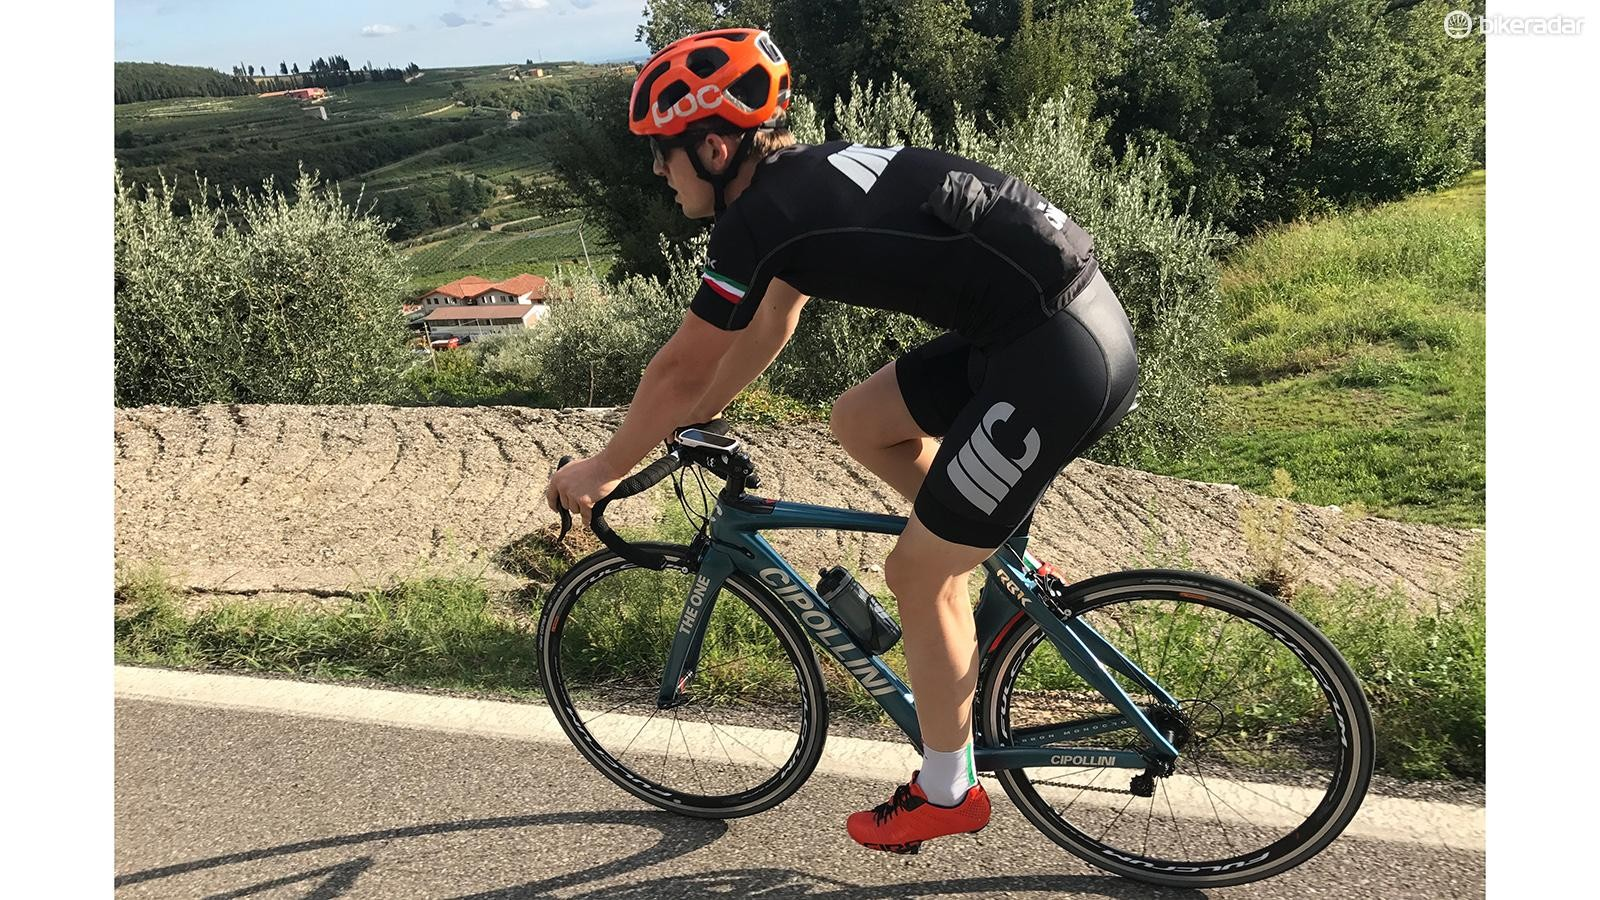 I tested the bike in the Valpolicella region of Italy